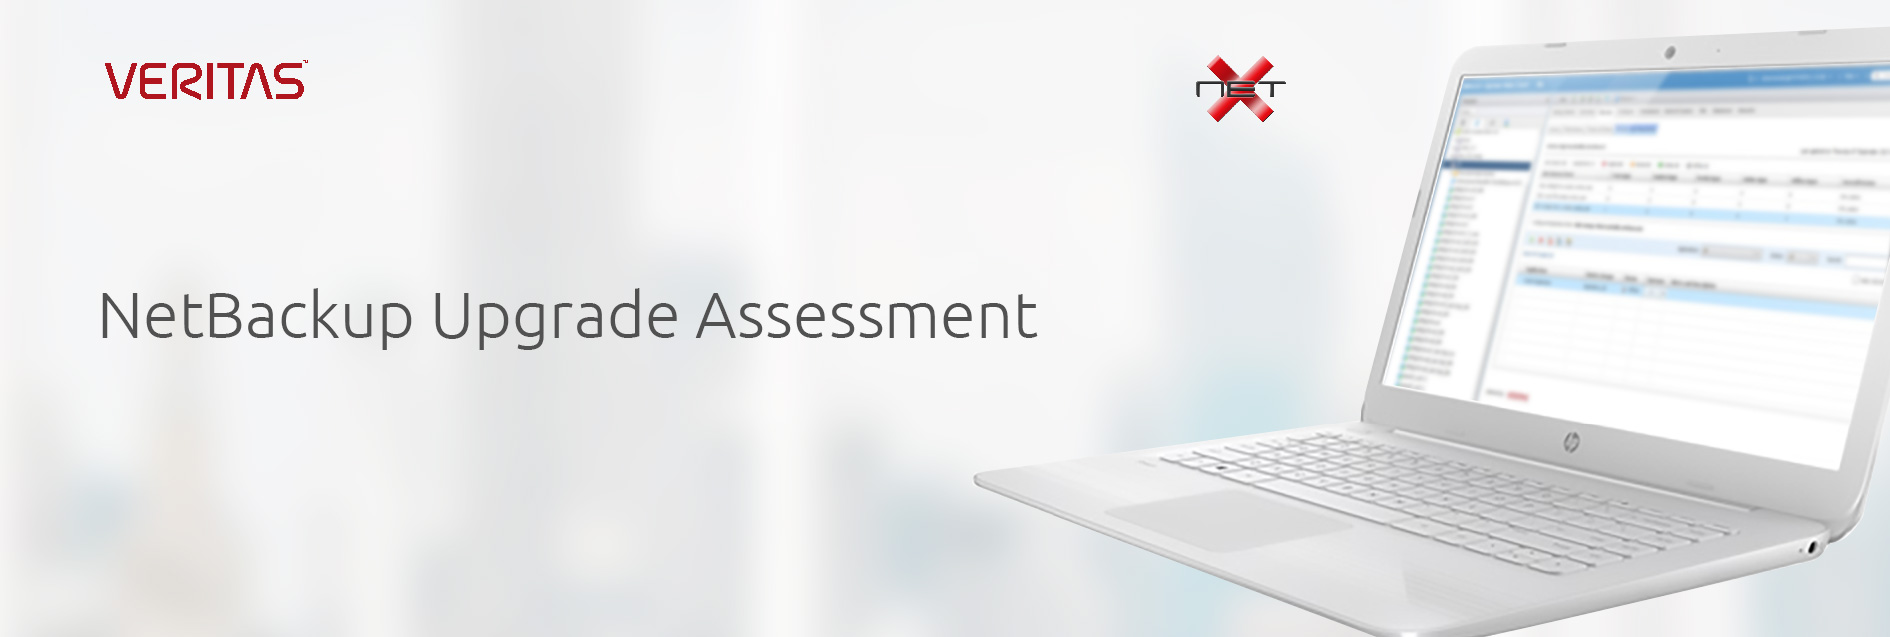 netx-symantec-NetBackup-Upgrade-Assessment-banner